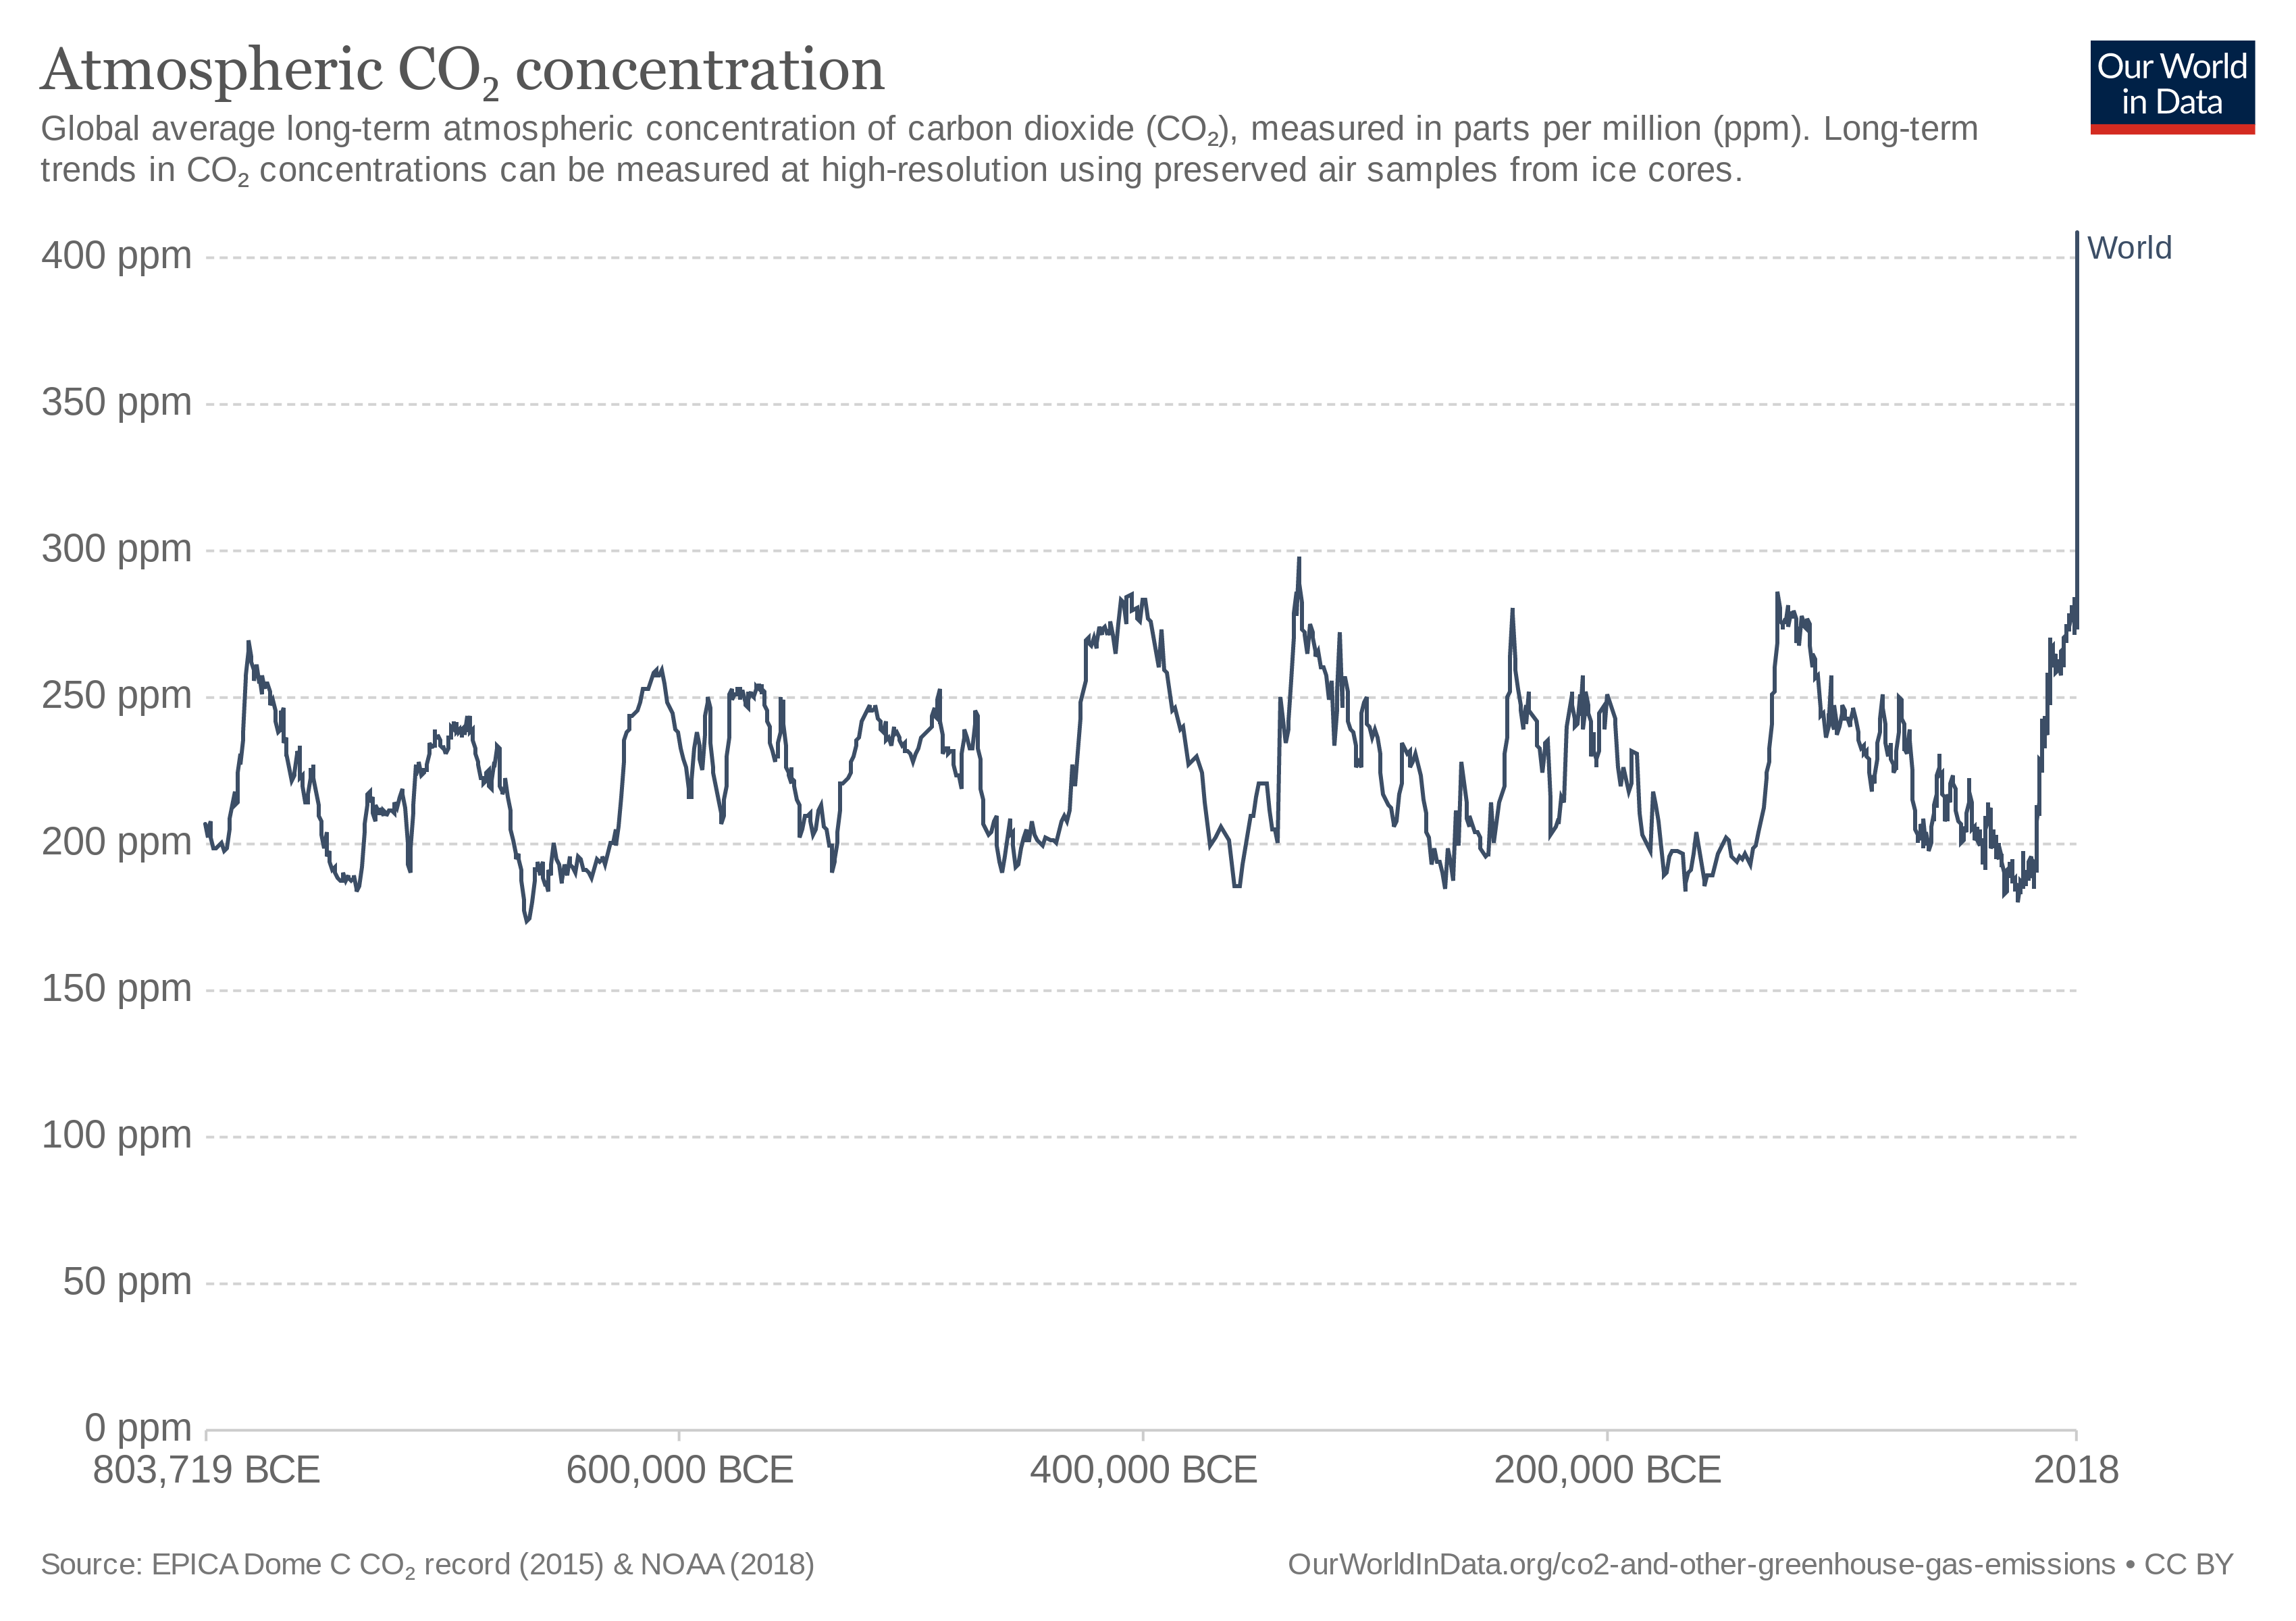 CO2 concentrations over the last 800,000 years